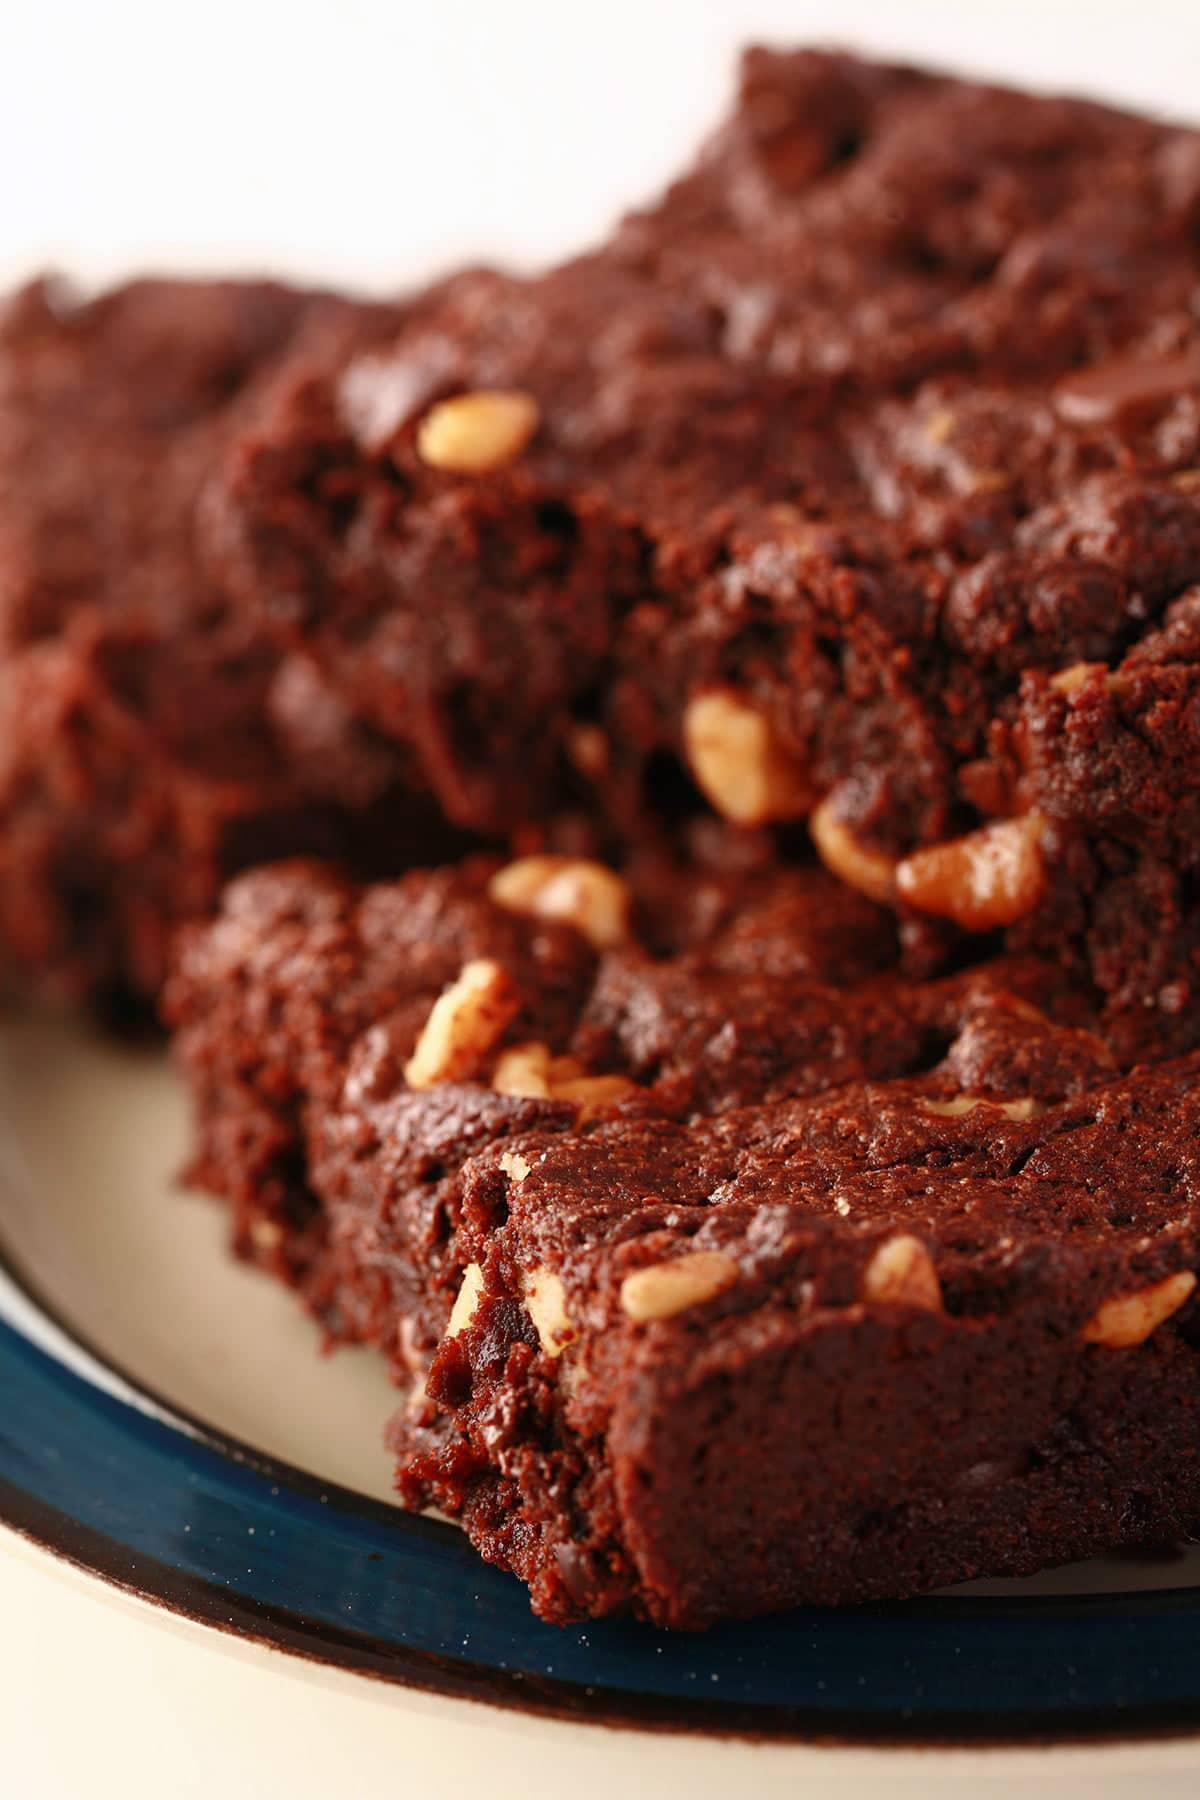 A small plate, piled with 4 double chocolate walnut brownies.